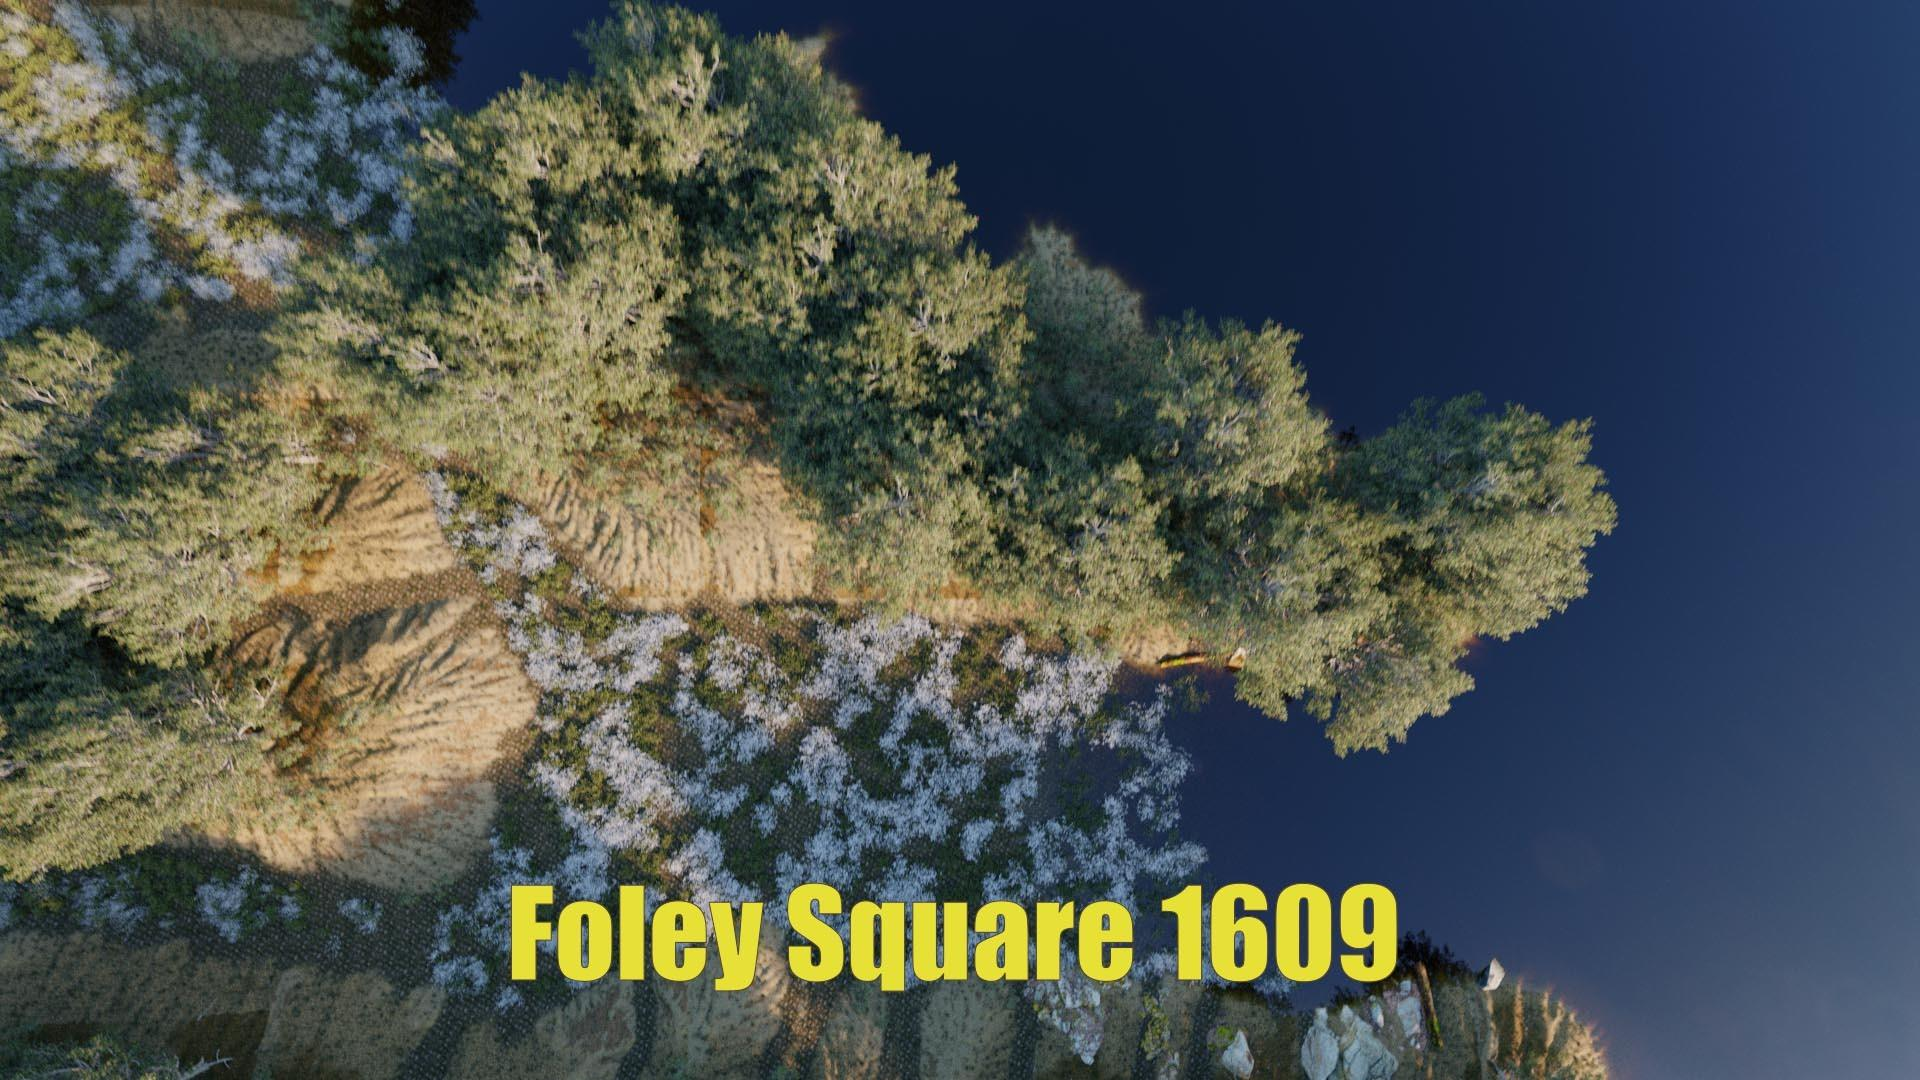 Aerial historical recreation 3d rendering of Collect Pond and Foley Square in New York City circa 1600